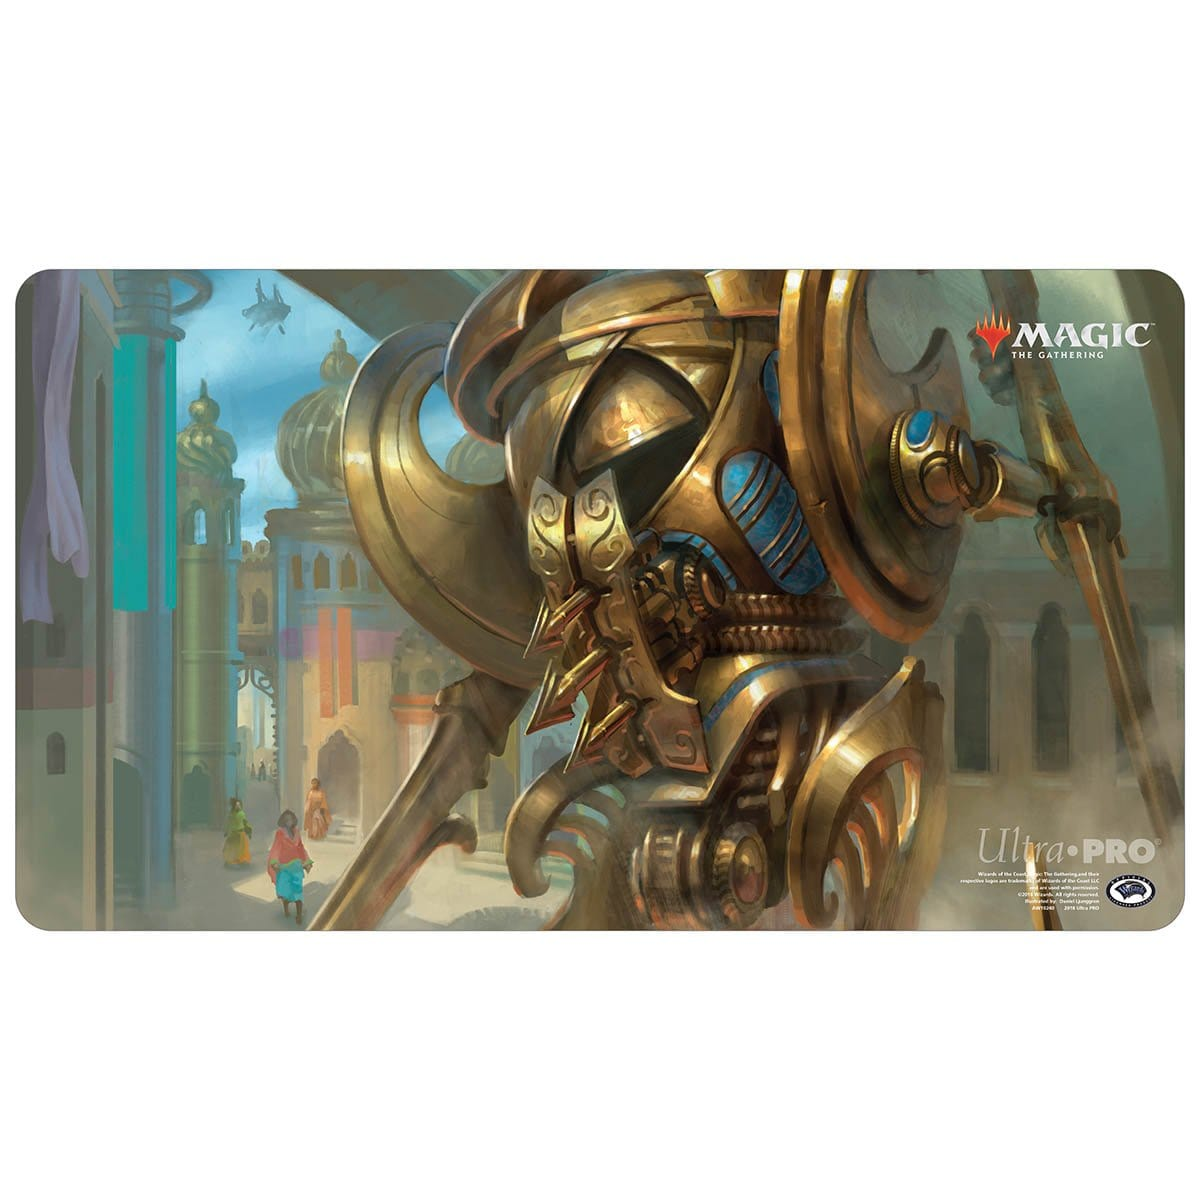 Walking Ballista Playmat